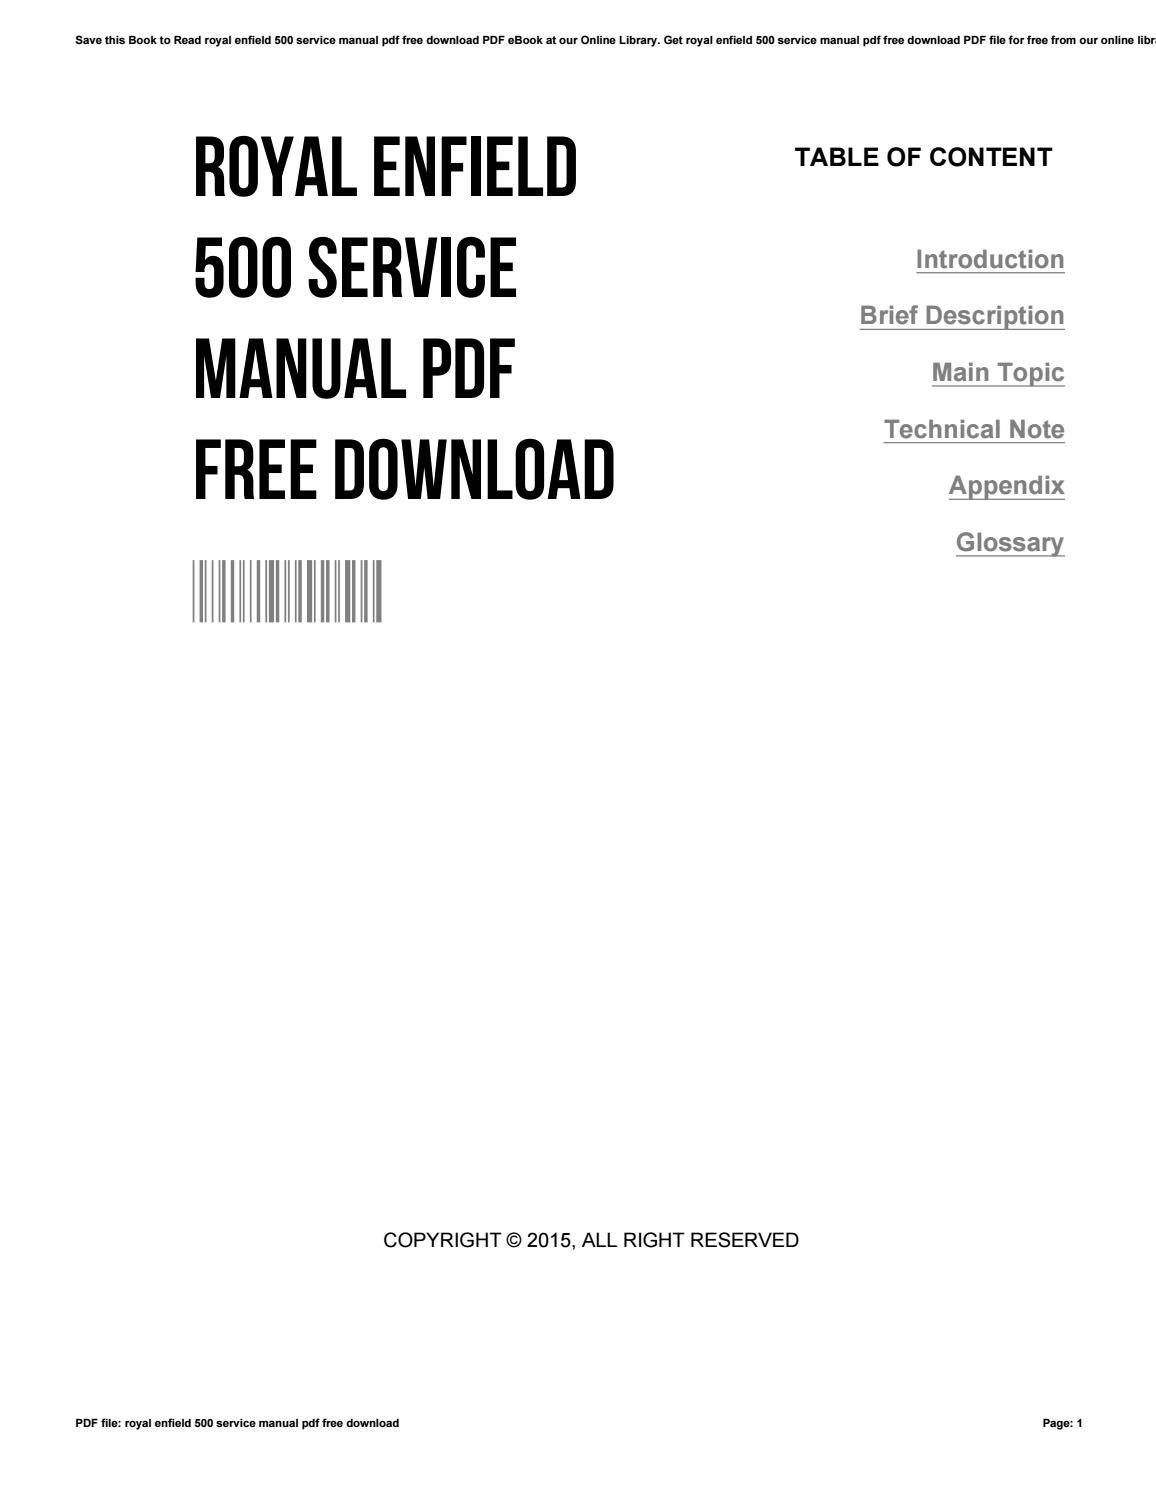 Royal enfield 500 service manual pdf free download by